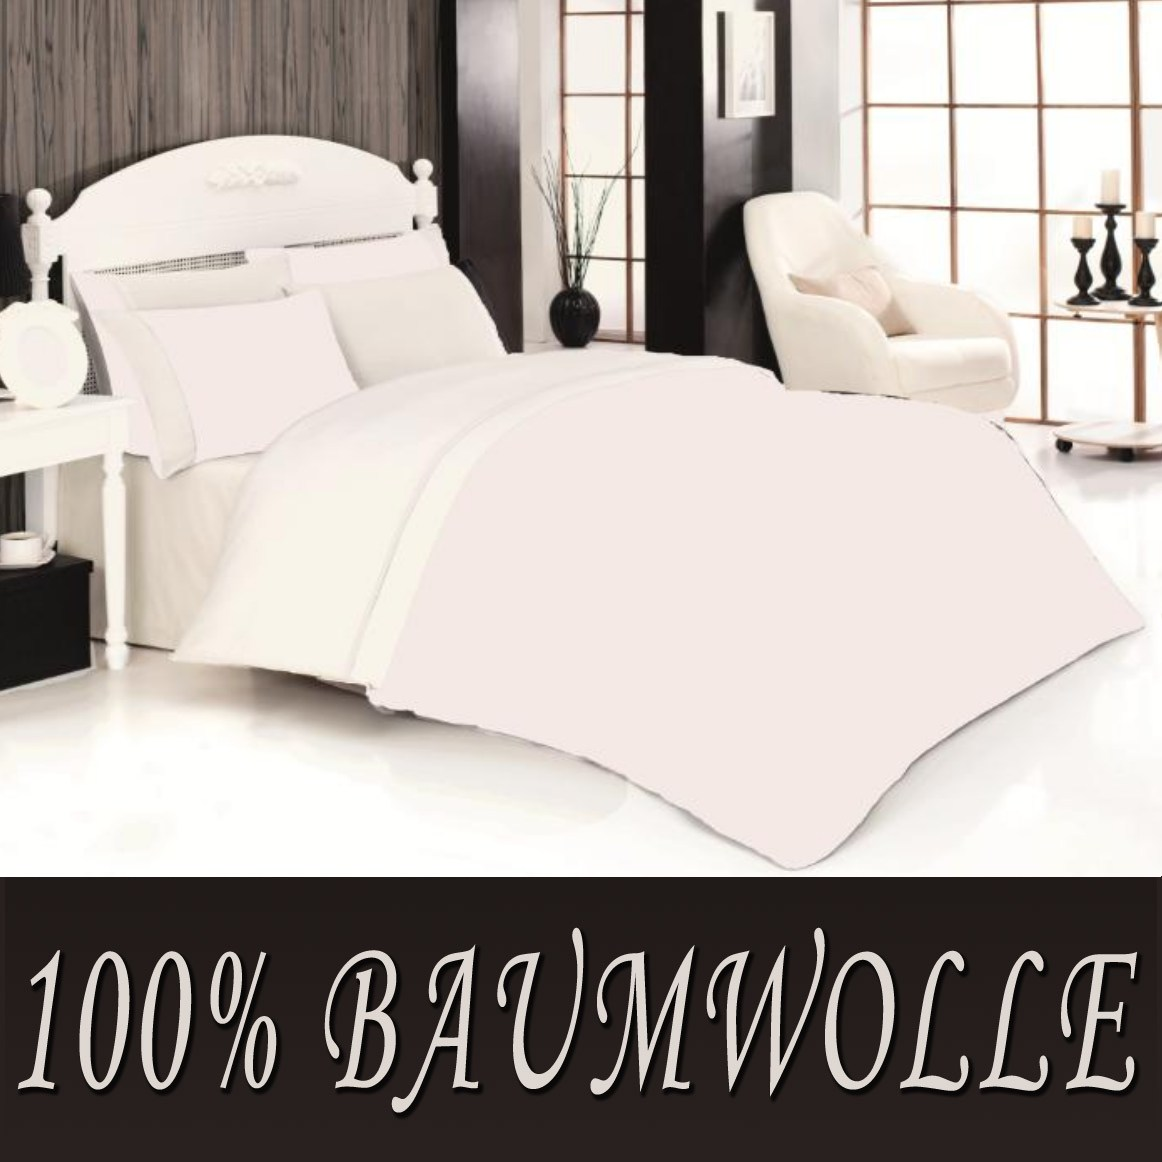 2 tlg bettw sche bettgarnitur baumwolle renforce 135 x 200 cm einfarbig uni neu ebay. Black Bedroom Furniture Sets. Home Design Ideas